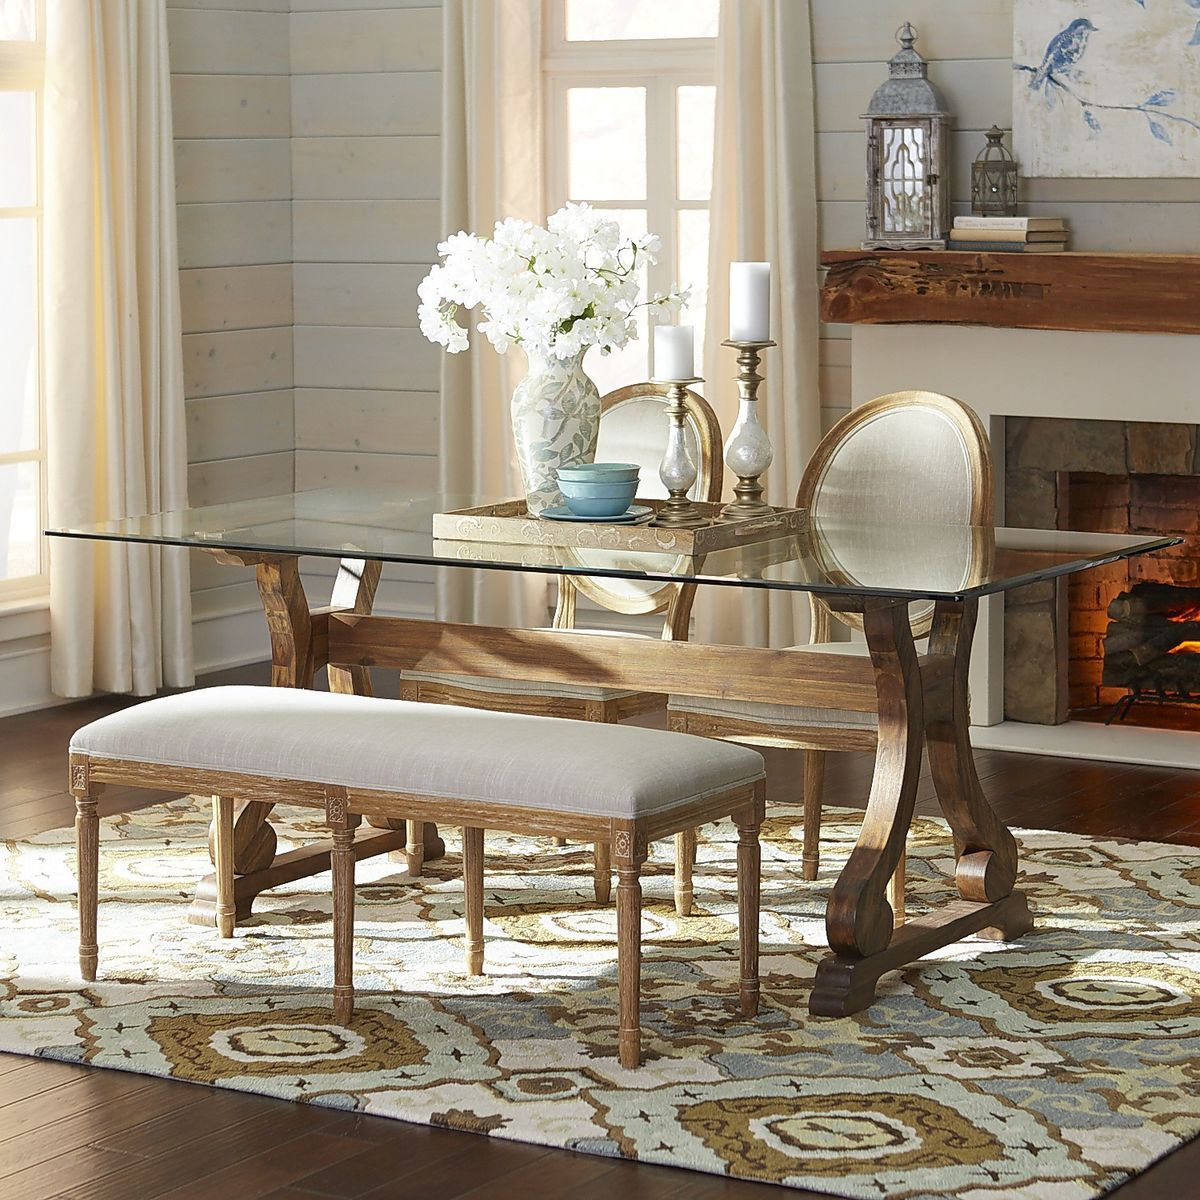 Charmant Marchella Glass Table Top Dining Set | Pier 1 Imports